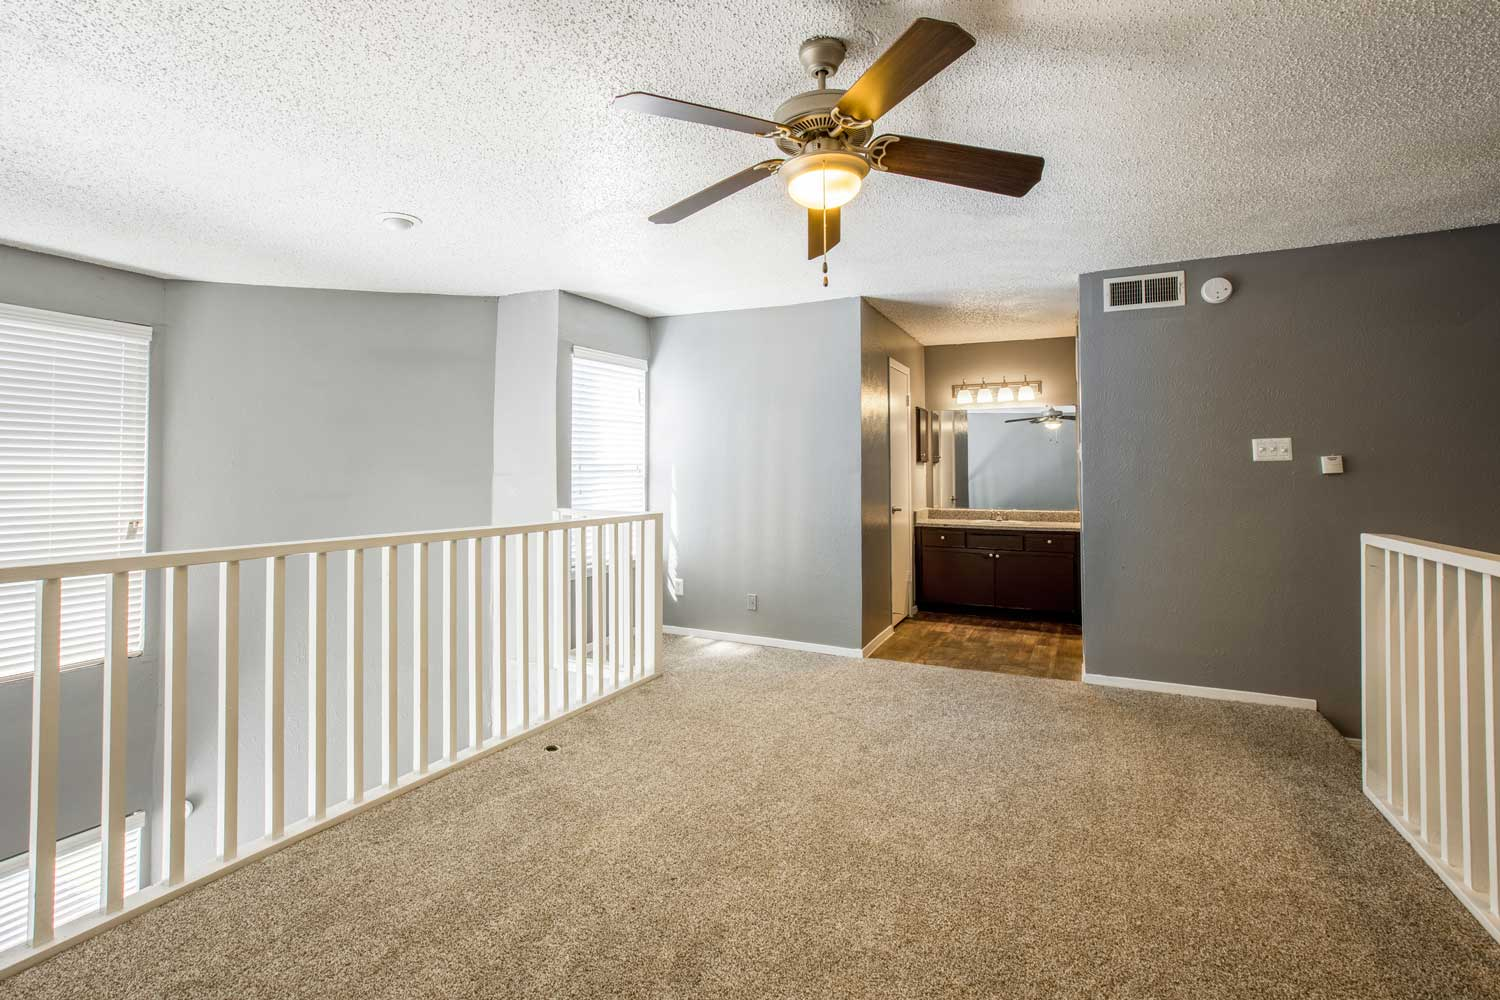 Ceiling Fan at Cadence Apartments in Dallas, Texas